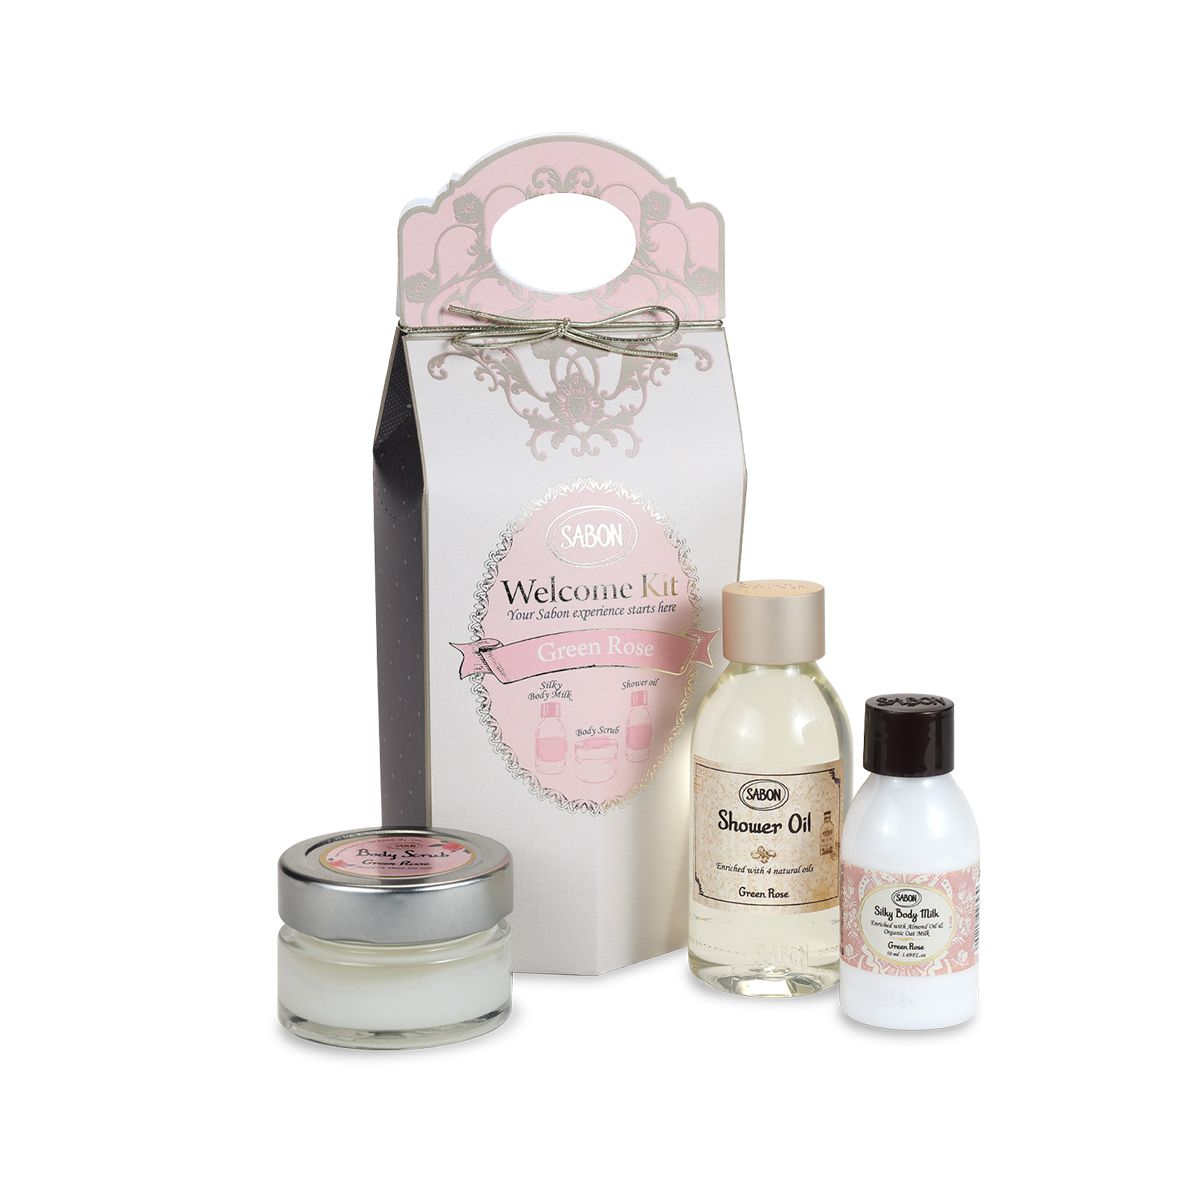 Welcome Kit - Green Rose